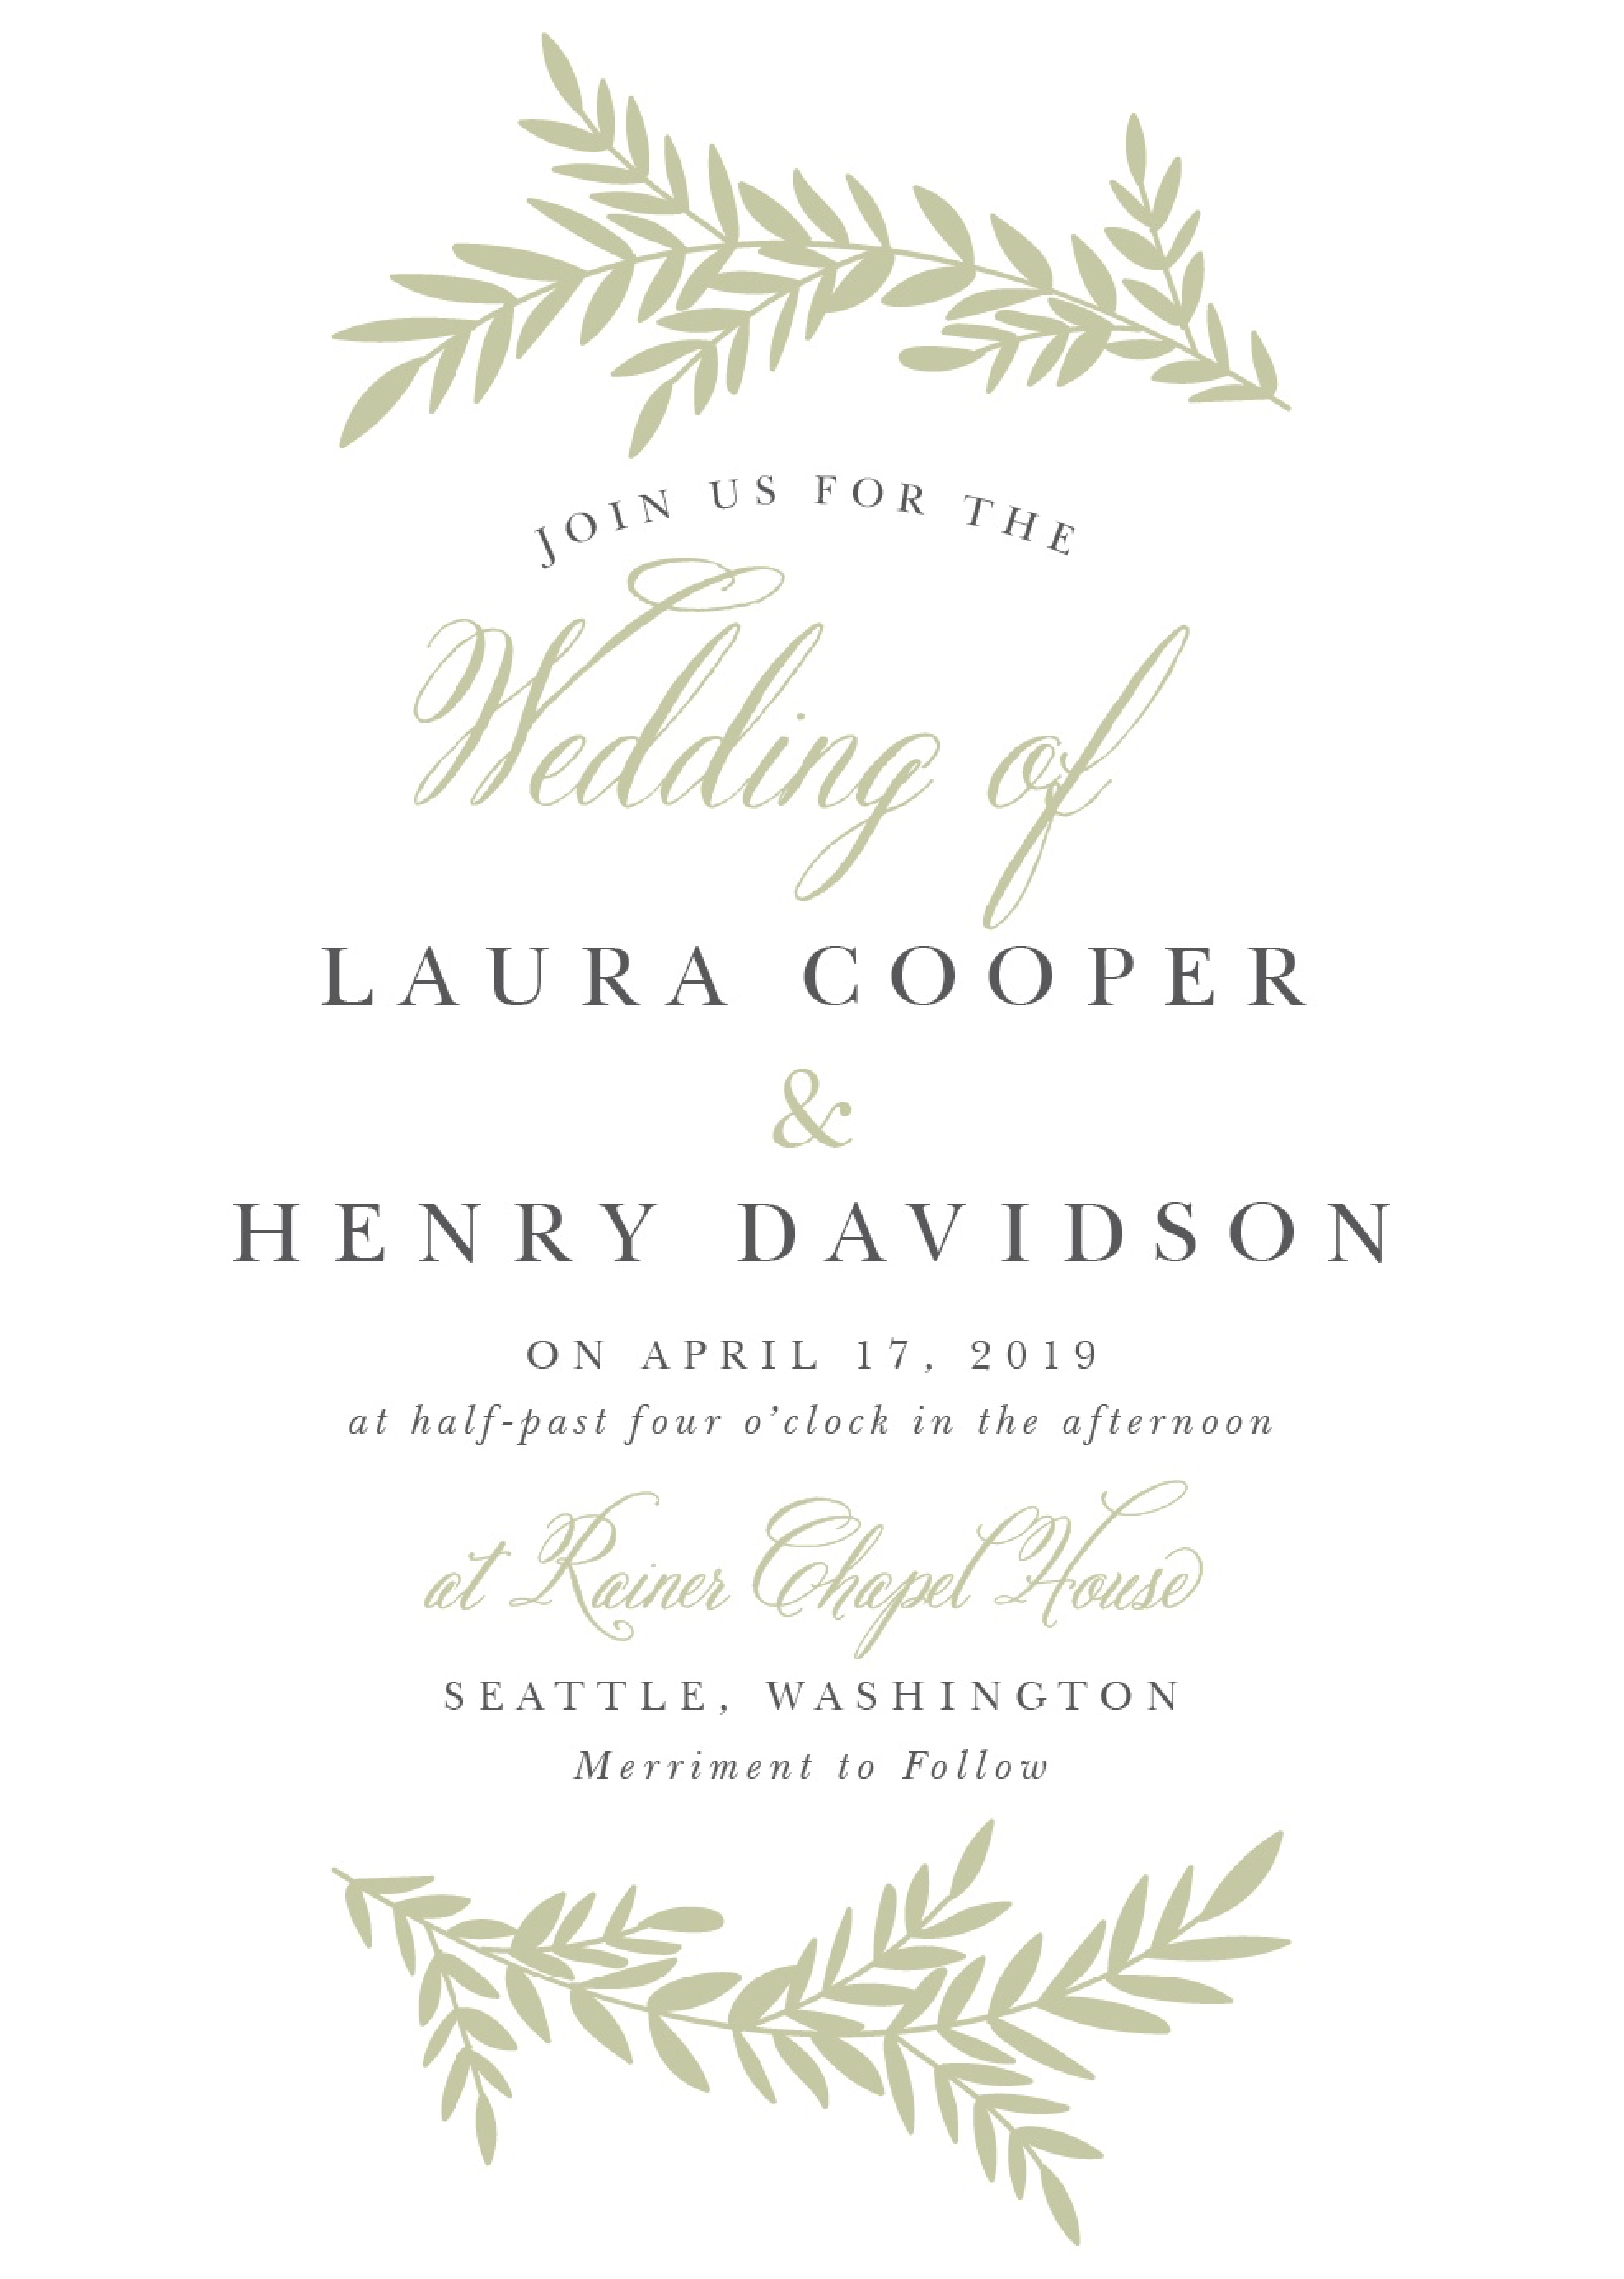 009 Incredible Wedding Invite Wording Template Example  Templates Chinese Invitation Microsoft Word From Bride And Groom InvitingFull